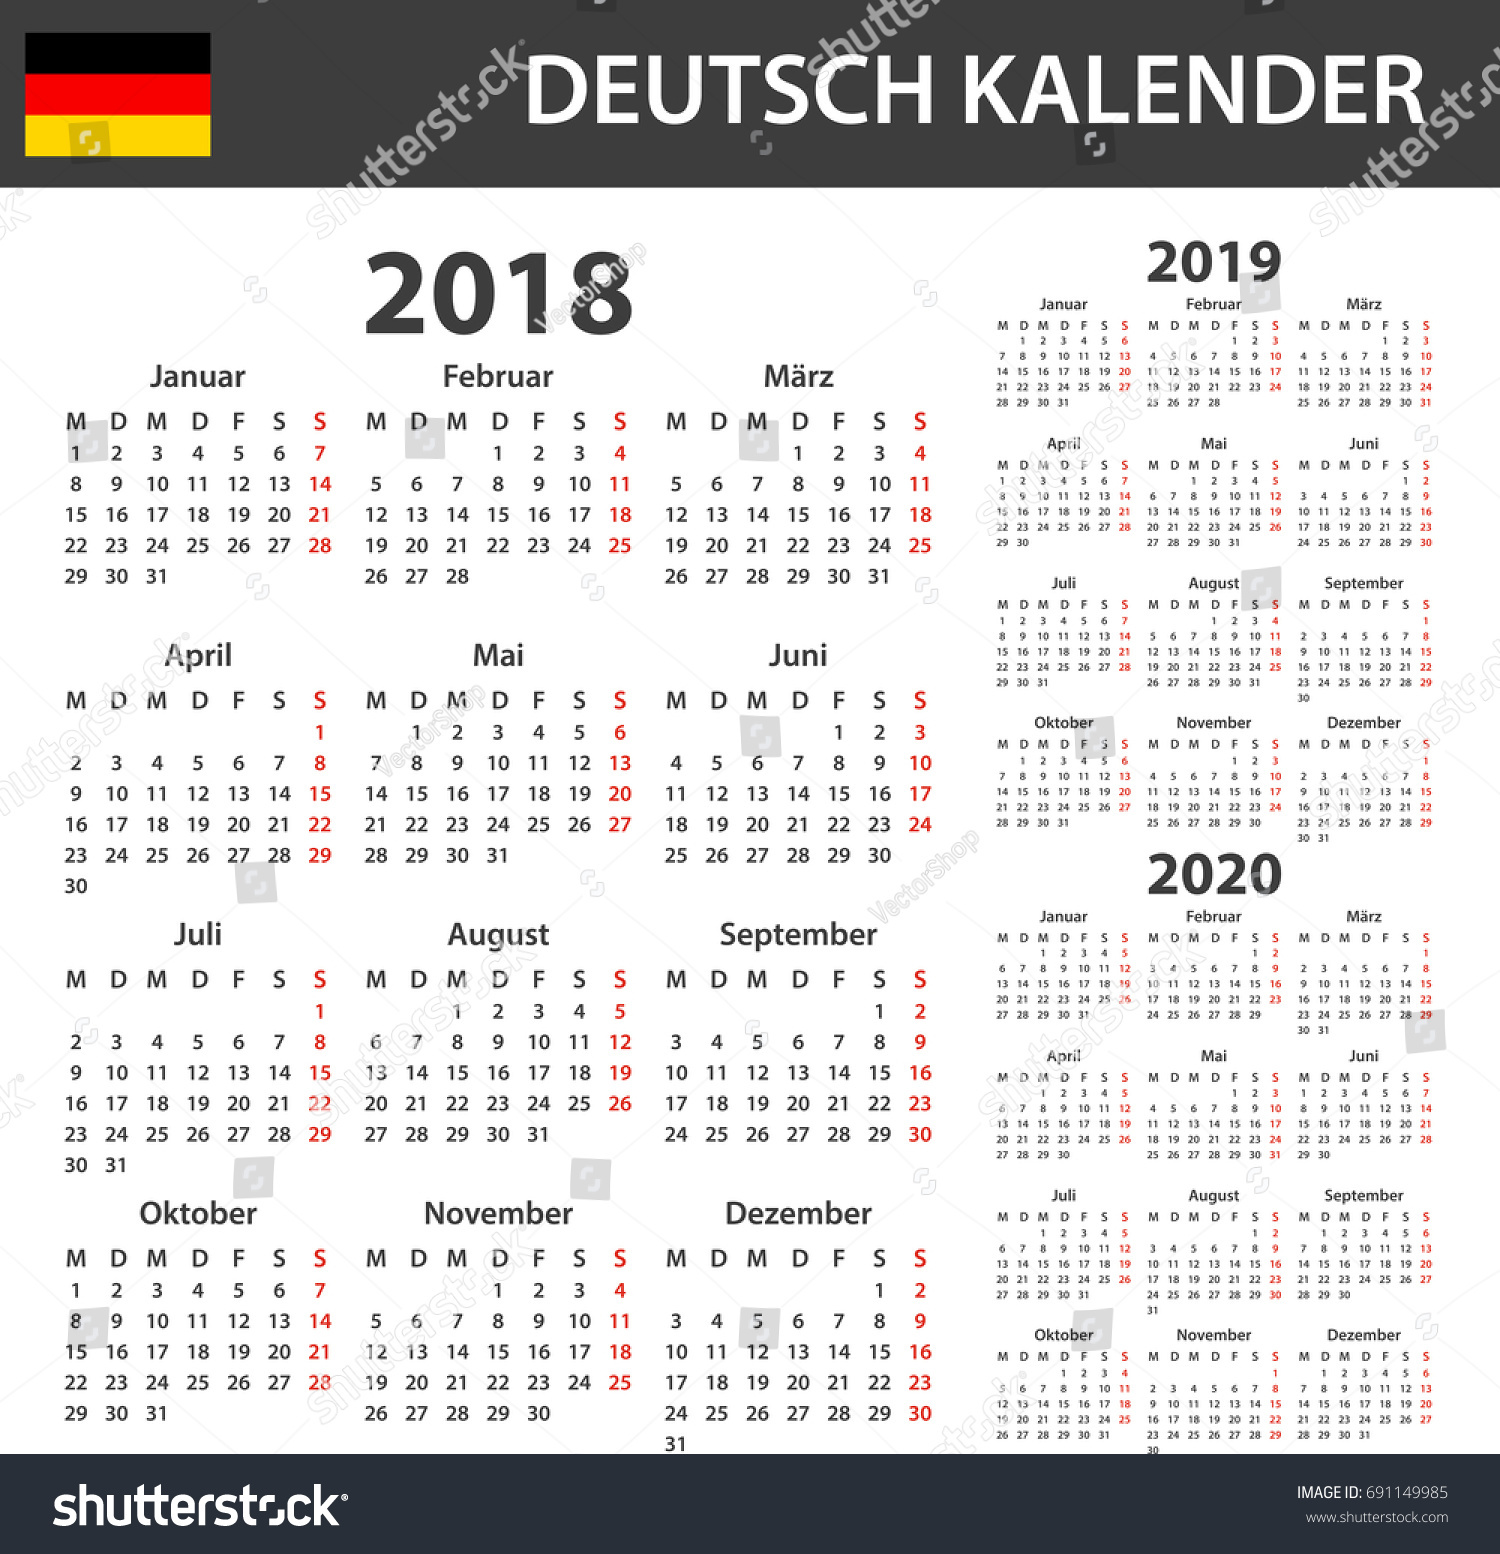 german calendar 2018 2019 2020 scheduler stock vector